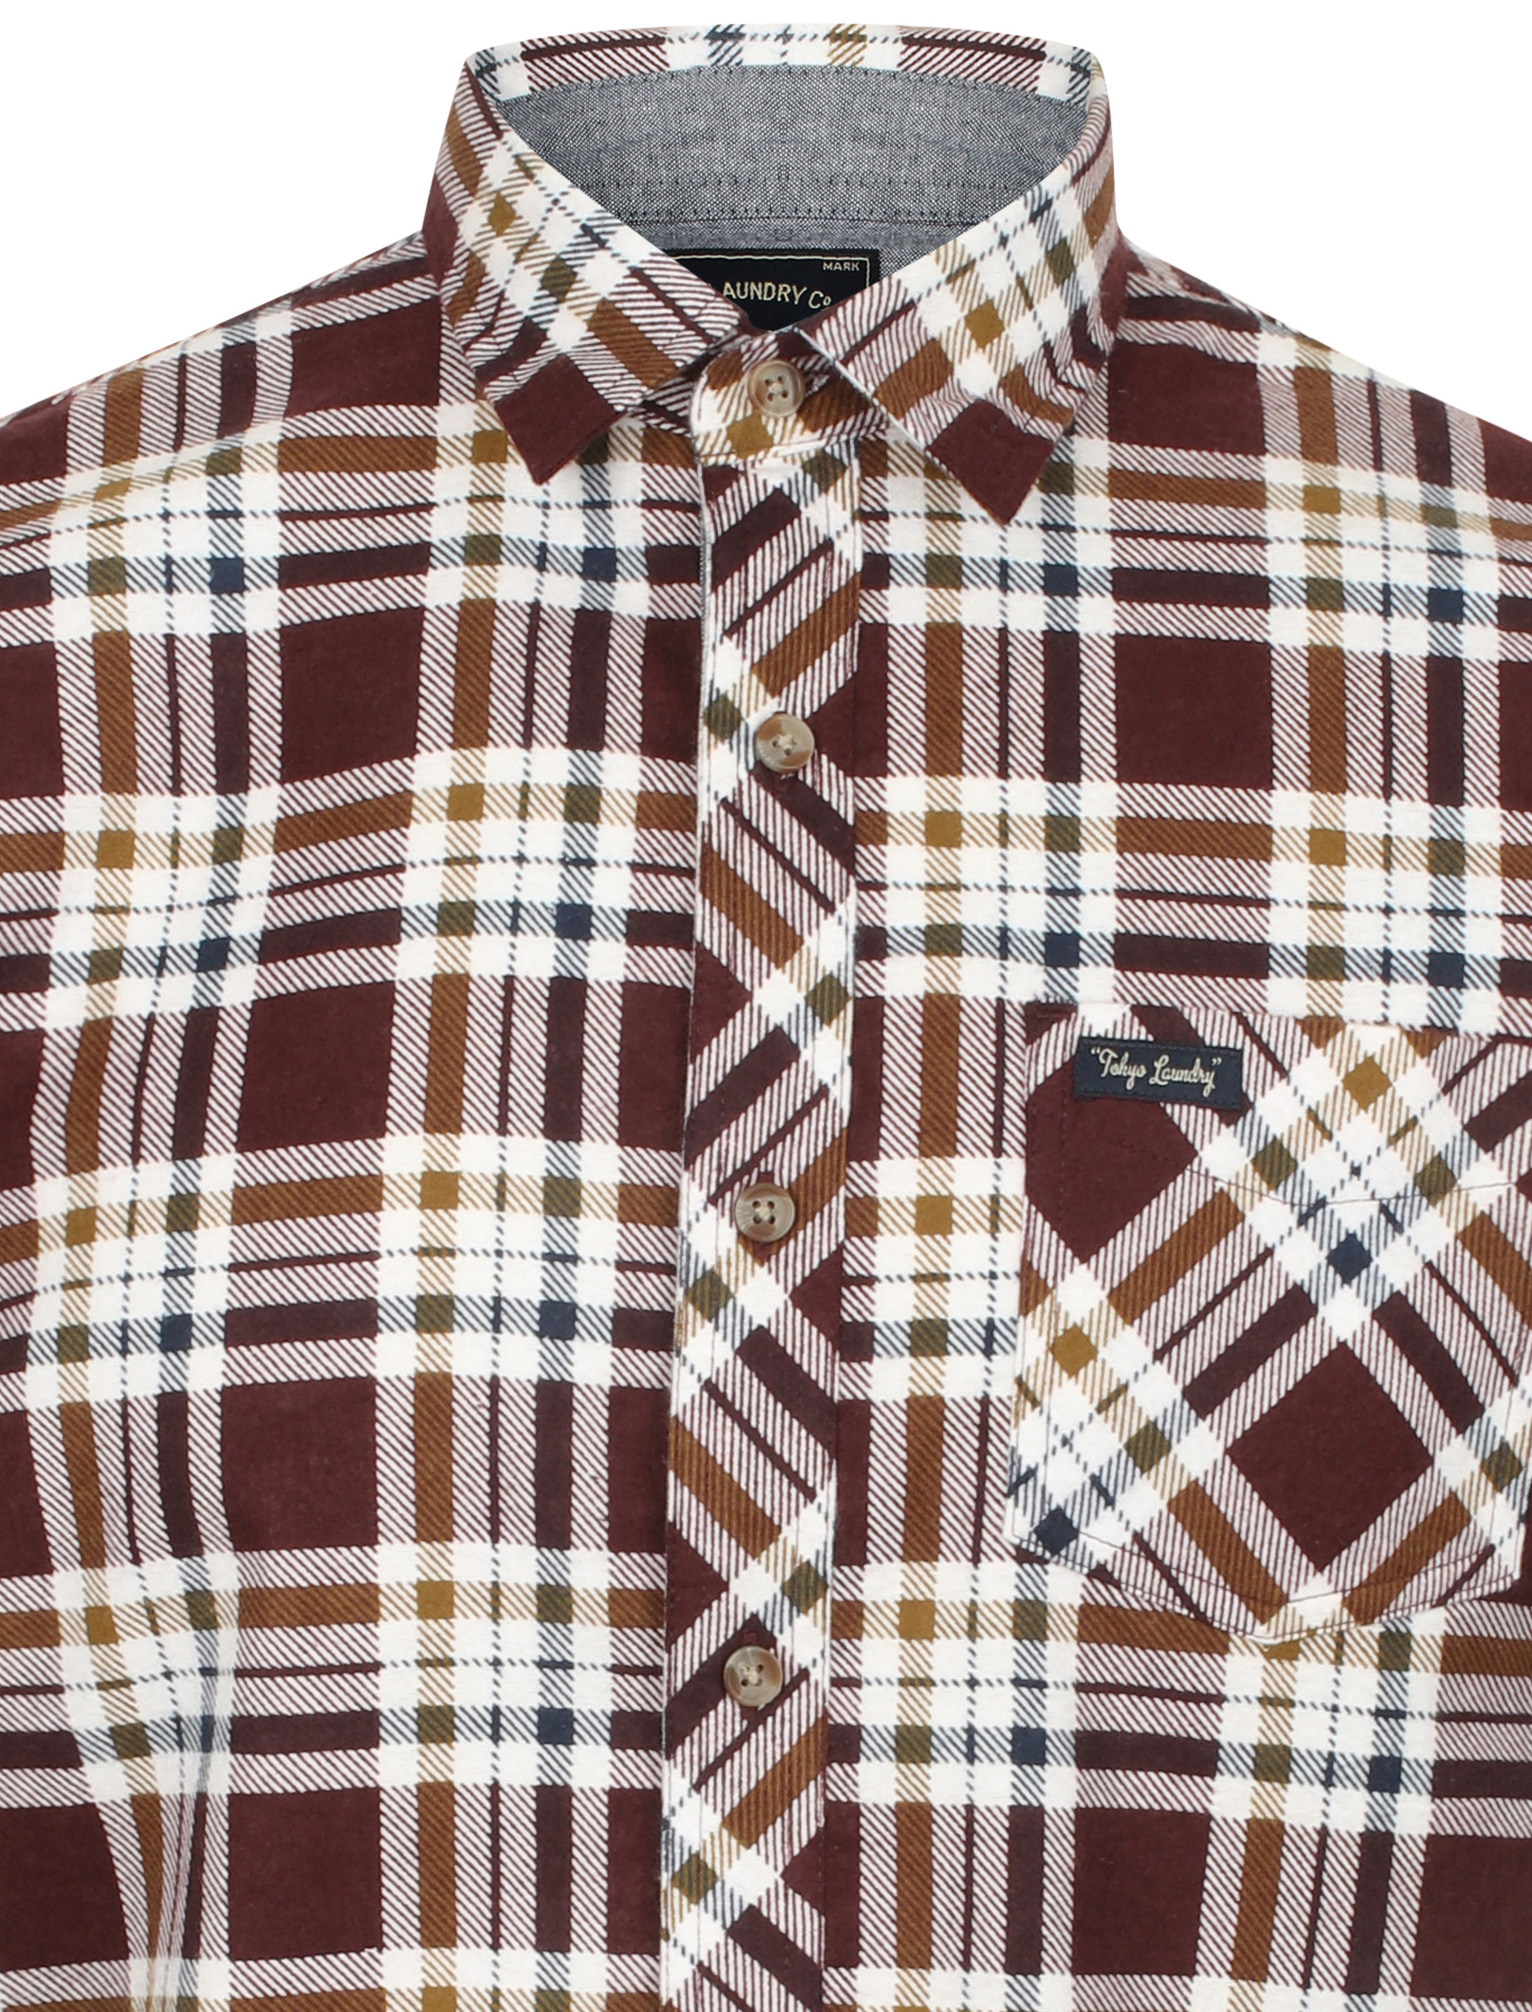 New-Mens-Tokyo-Laundry-Cotton-Long-Sleeve-Checked-Flannel-Shirt-Size-S-XL thumbnail 31